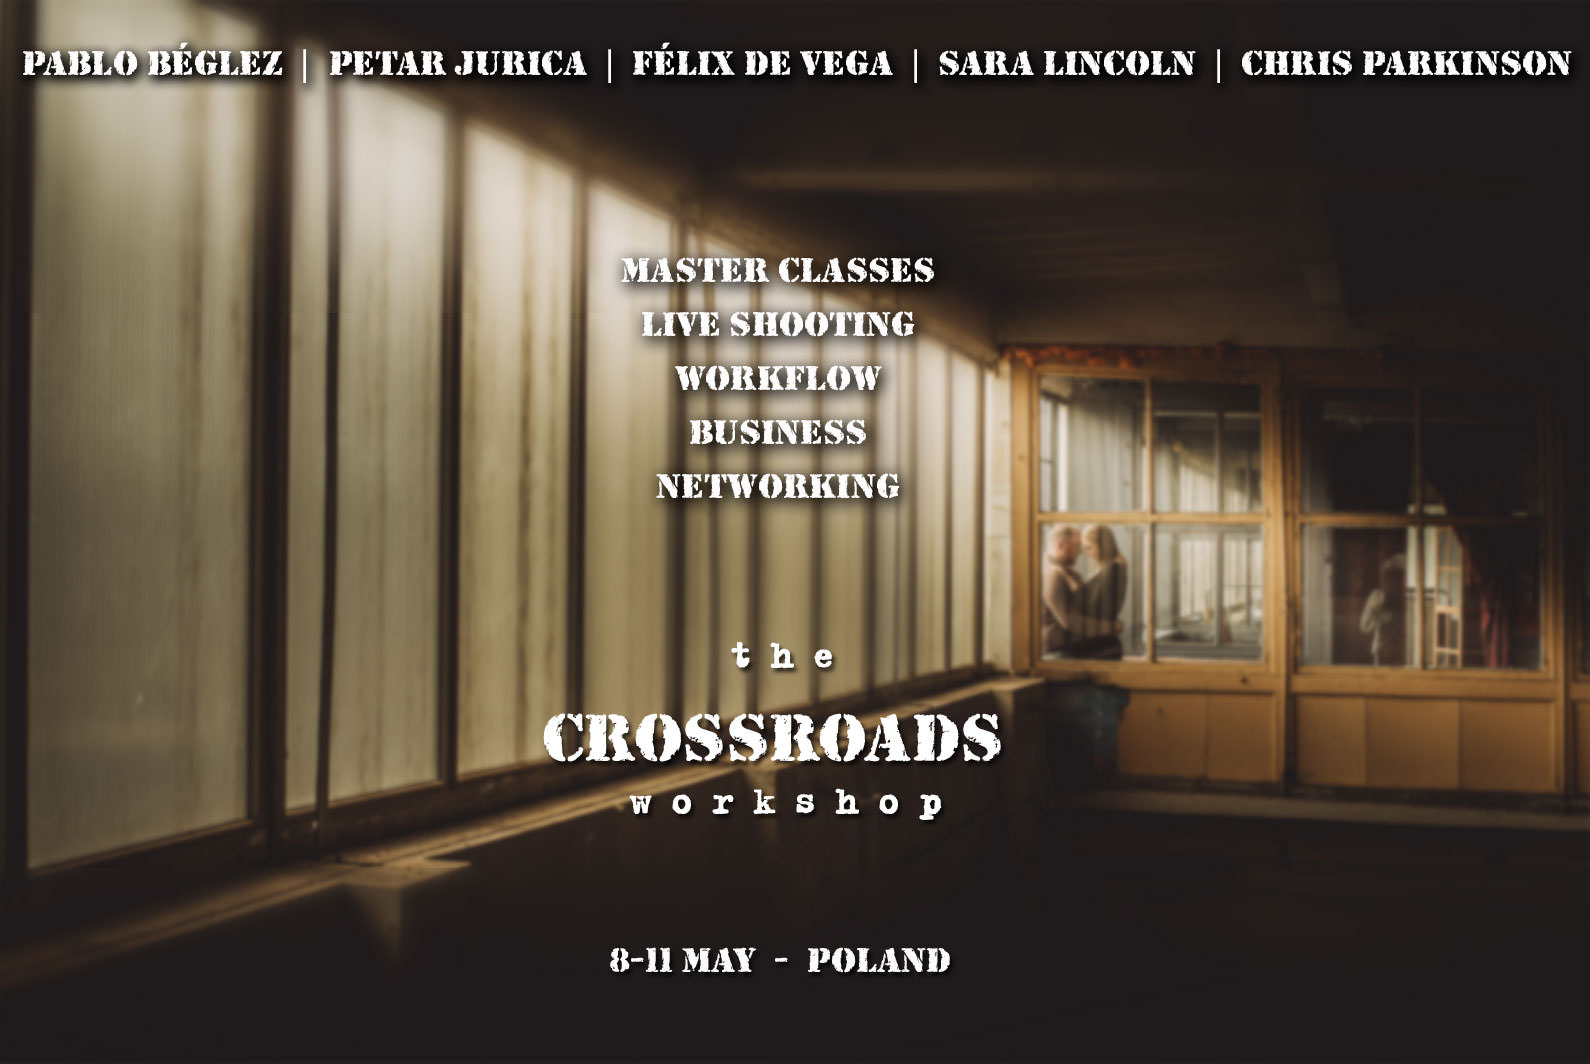 Wedding photography workshop Poland crossroads